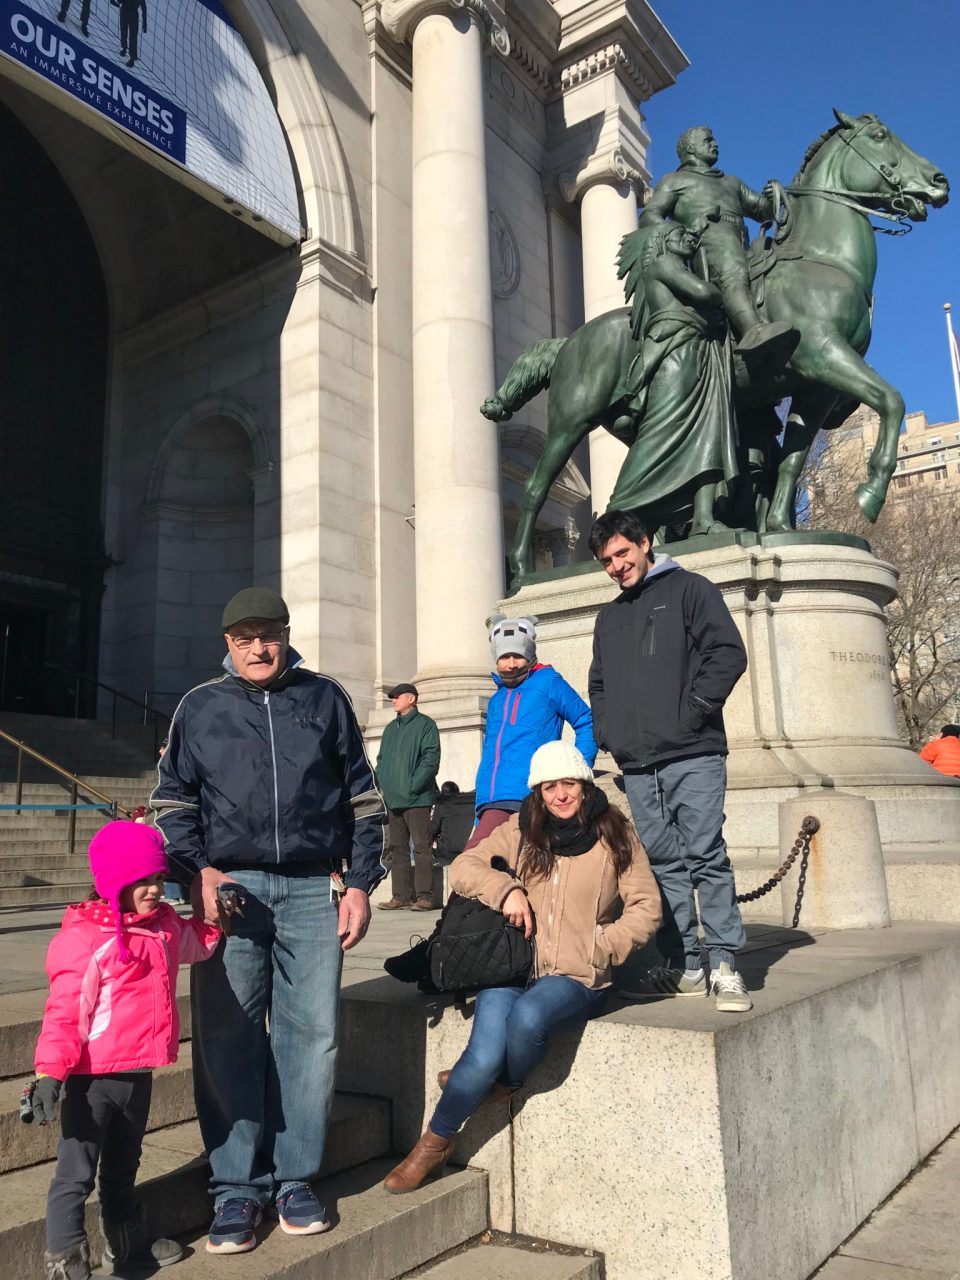 There are so many reasons for a family visit to the American Museum of Natural History in #NYC. Here's a great list of must sees to help as you plan your museum visit + a few things you need to know before you go!